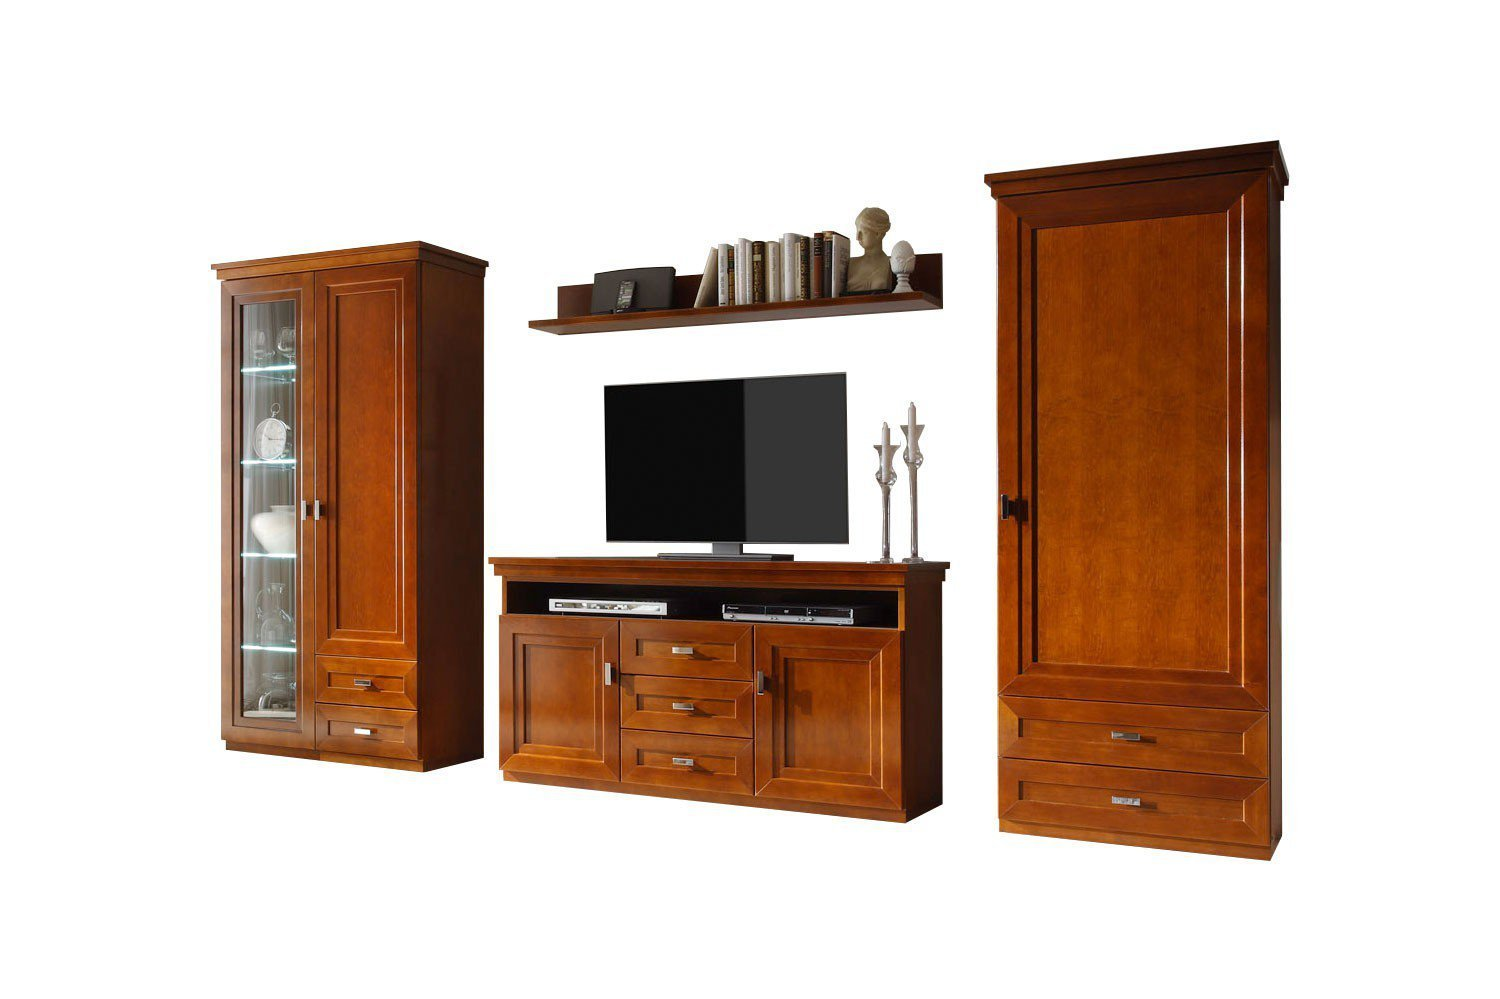 wehrsdorfer wohnwand kent ph 666 cognac antik m bel letz ihr online shop. Black Bedroom Furniture Sets. Home Design Ideas